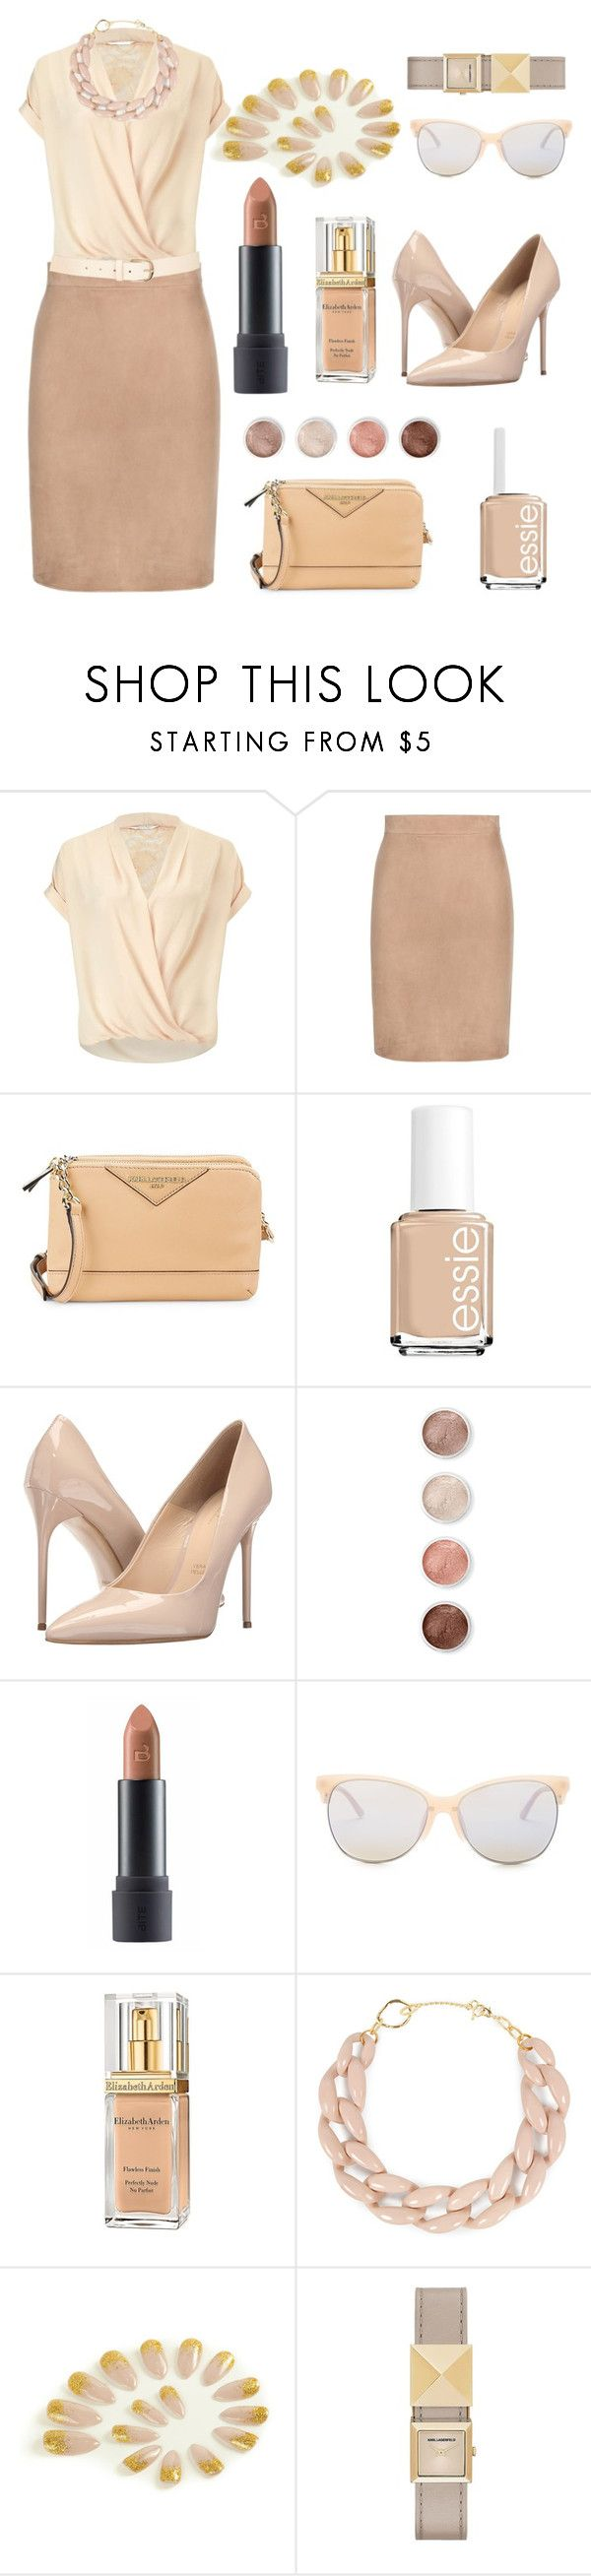 """I prefer to go NUDE."" by anexushill ❤ liked on Polyvore featuring Miss Selfridge, Tom Ford, Karl Lagerfeld, Essie, Massimo Matteo, Terre Mère, Bite, Smith Optics, Elizabeth Arden and DIANA BROUSSARD"